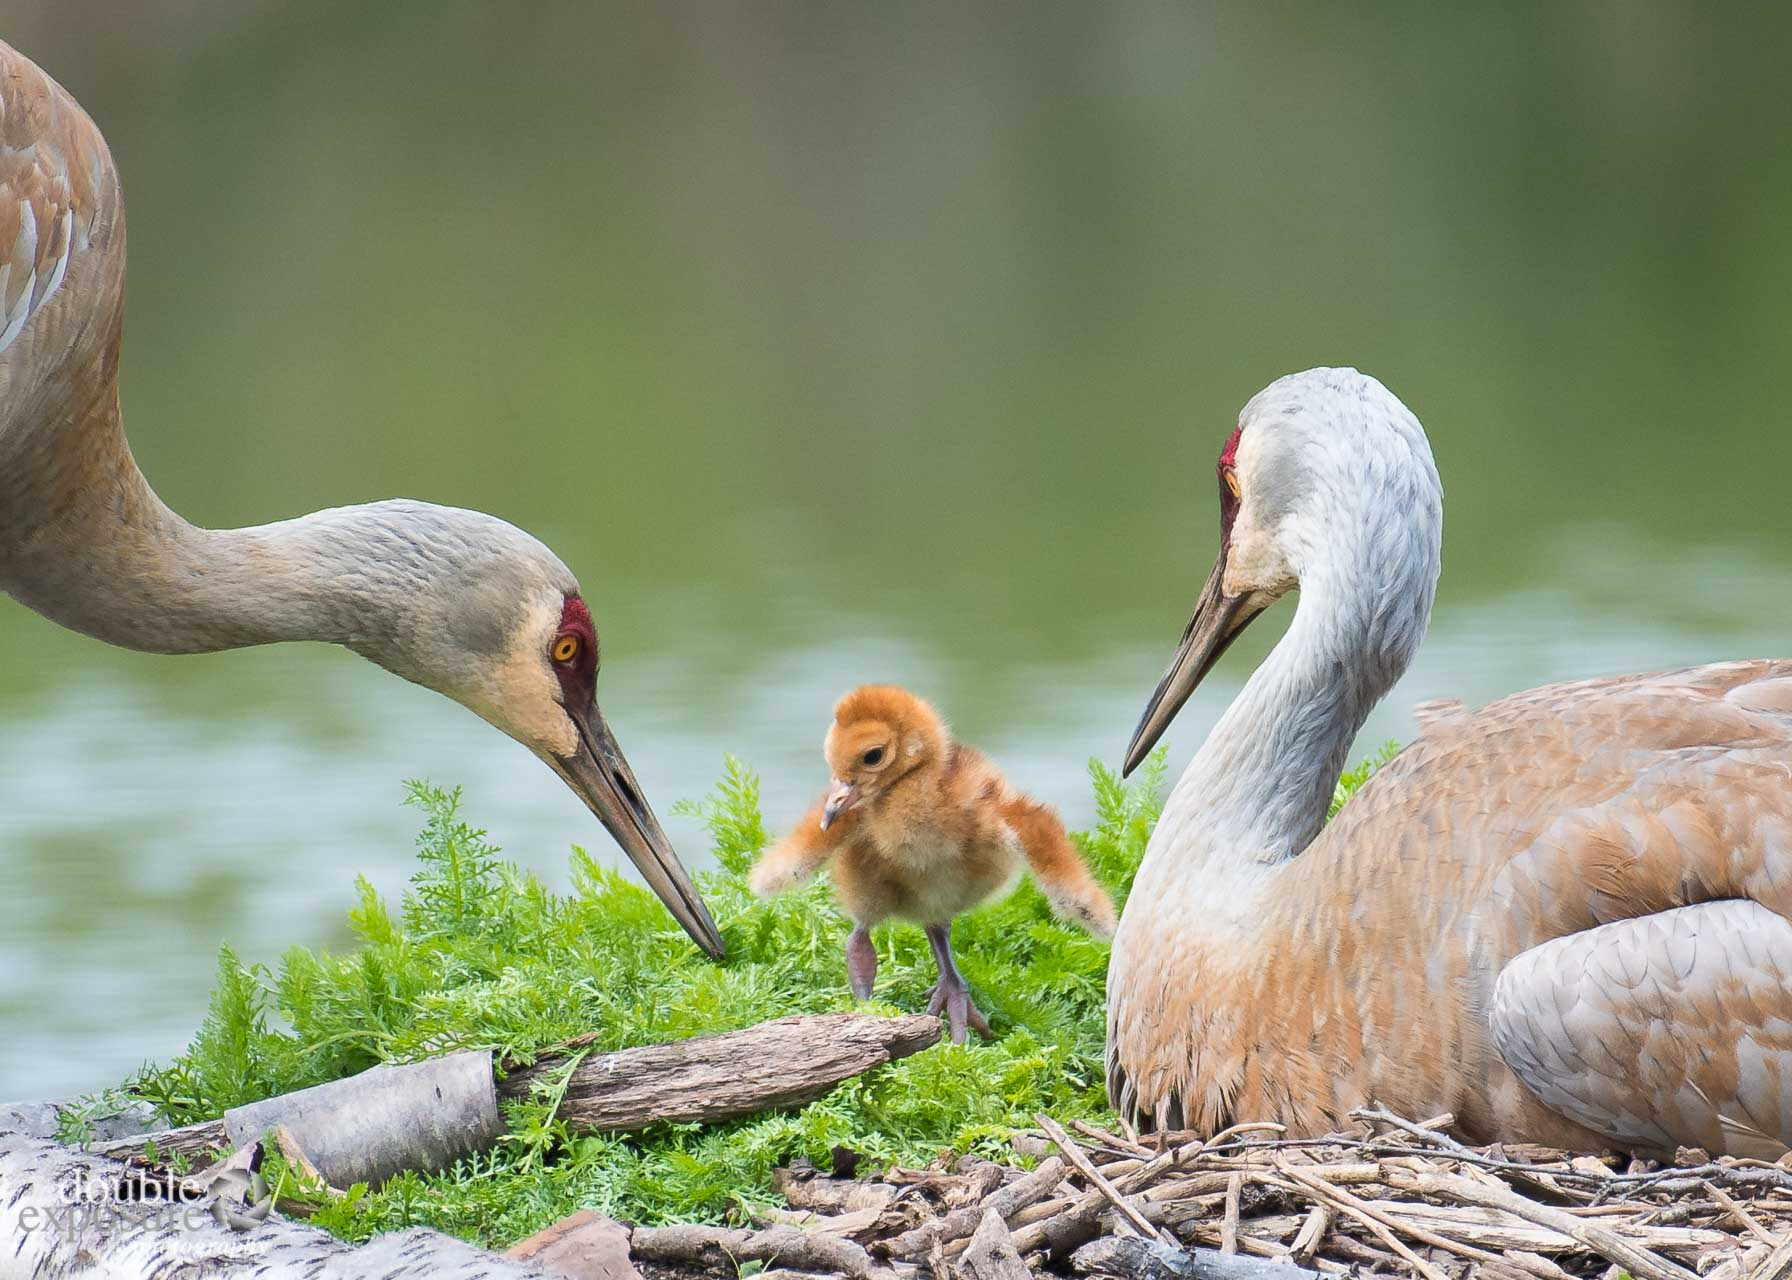 Two sandhill cranes look after young